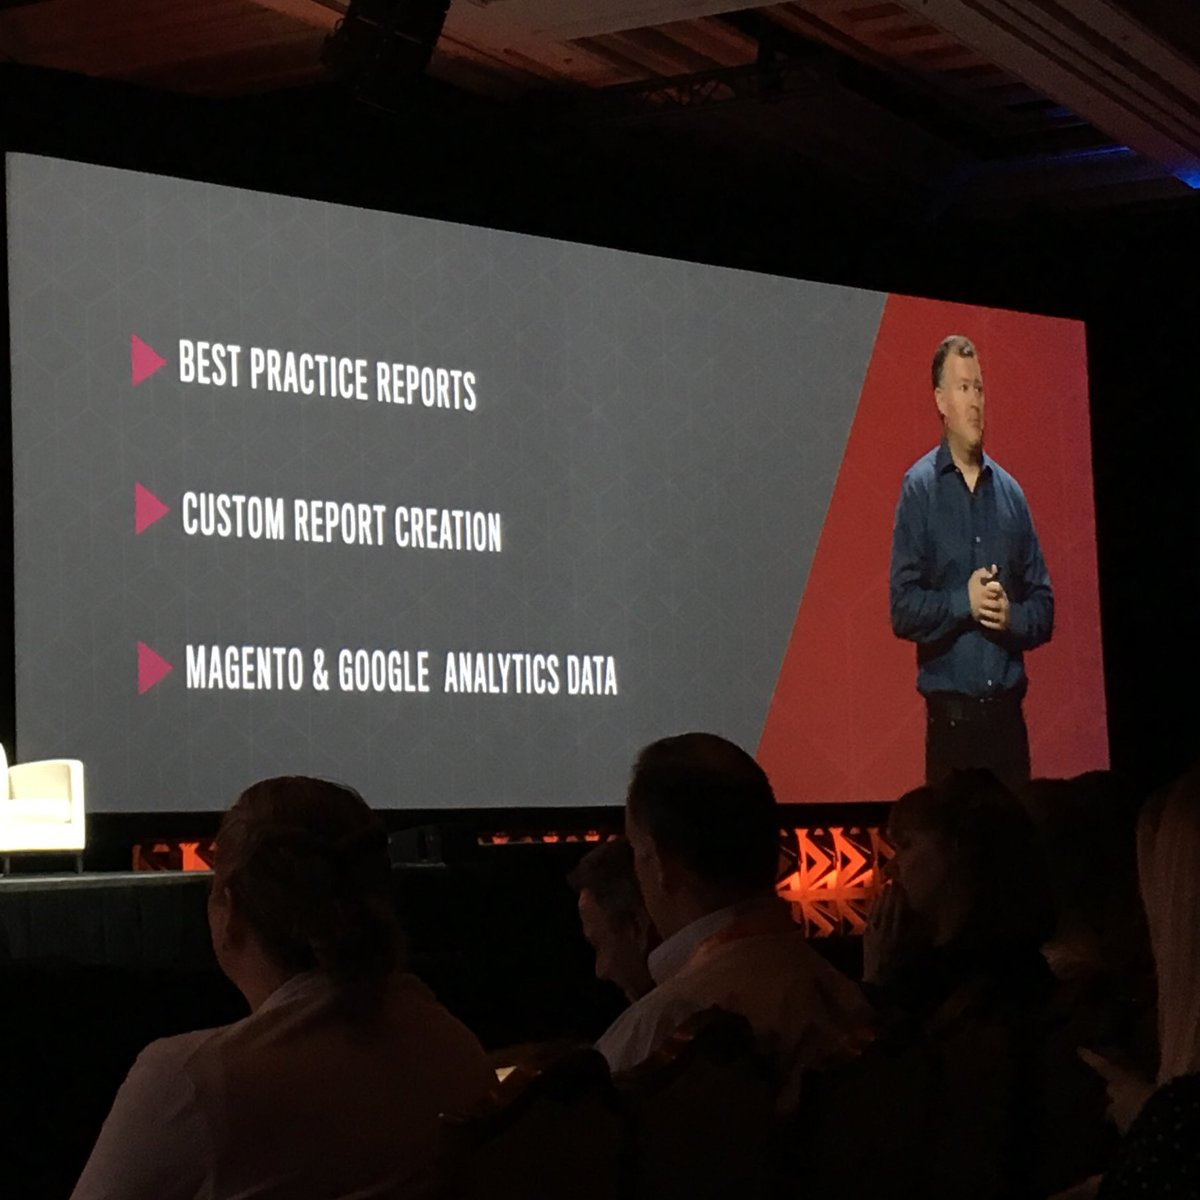 sonjarierr: Looking forward to seeing business intelligence inside Magento #Magentoimagine nhttps://t.co/NPiYdUSDEa https://t.co/Bc7QLGNohf